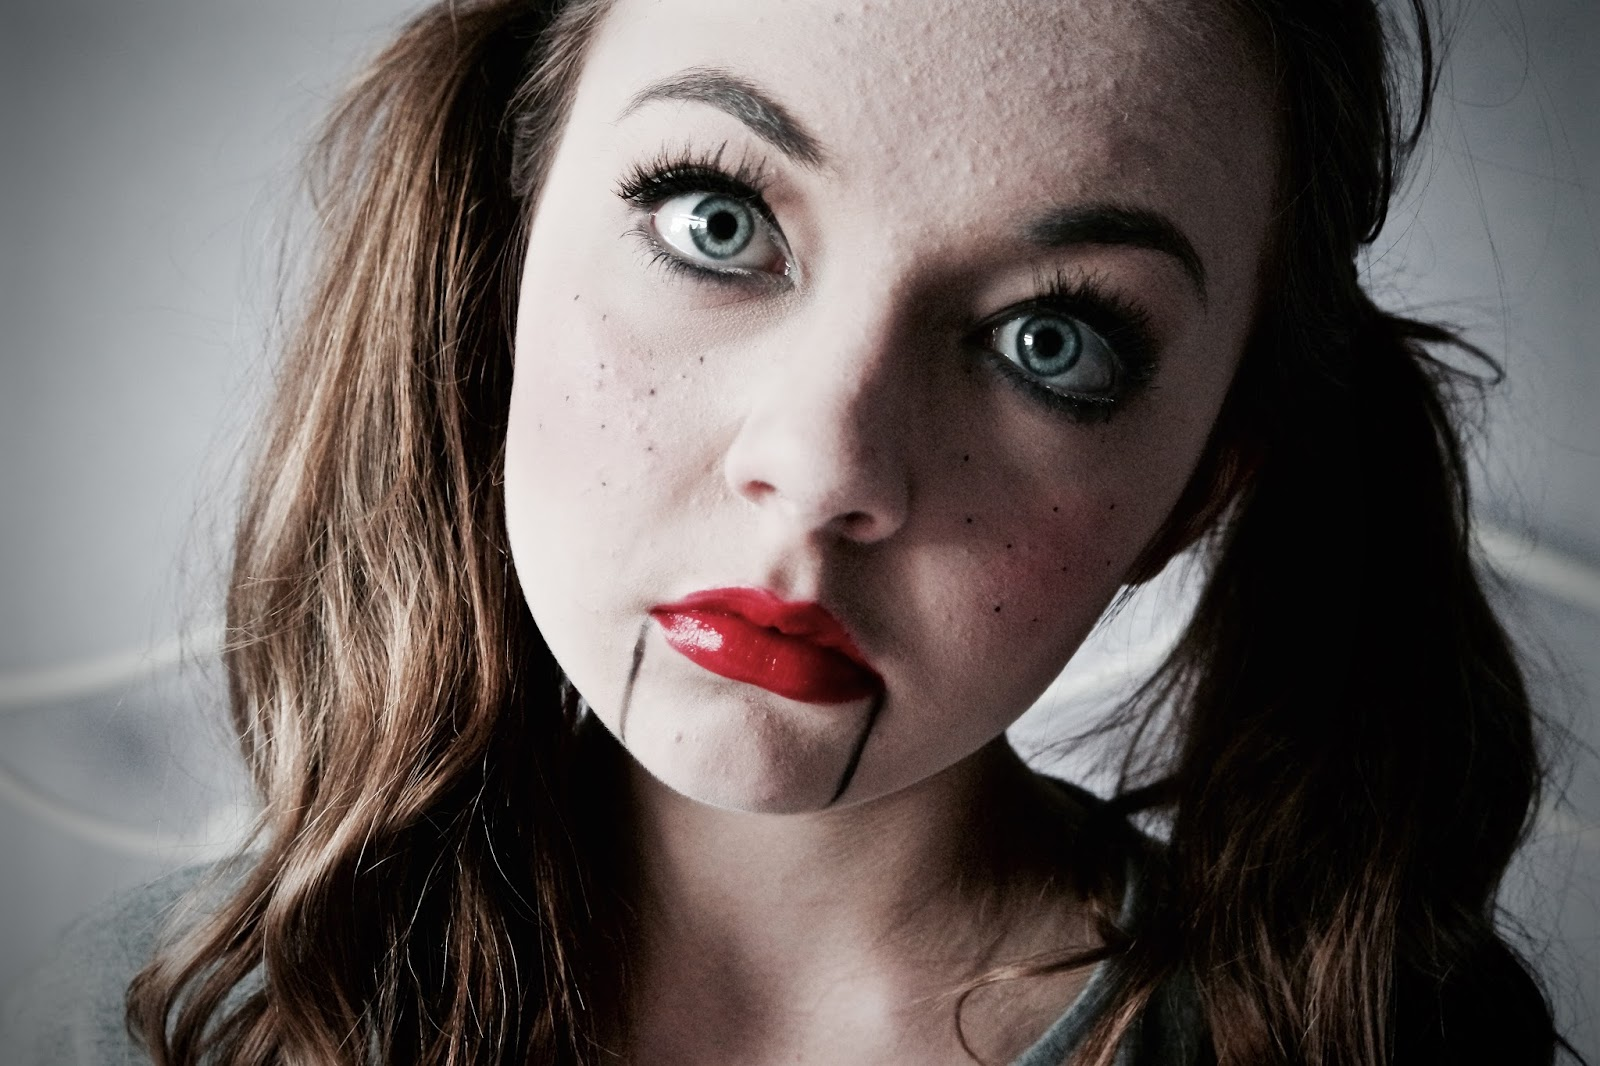 Katie Lou | Beauty, Fashion & Lifestyle Blog: Scary Halloween Doll ...